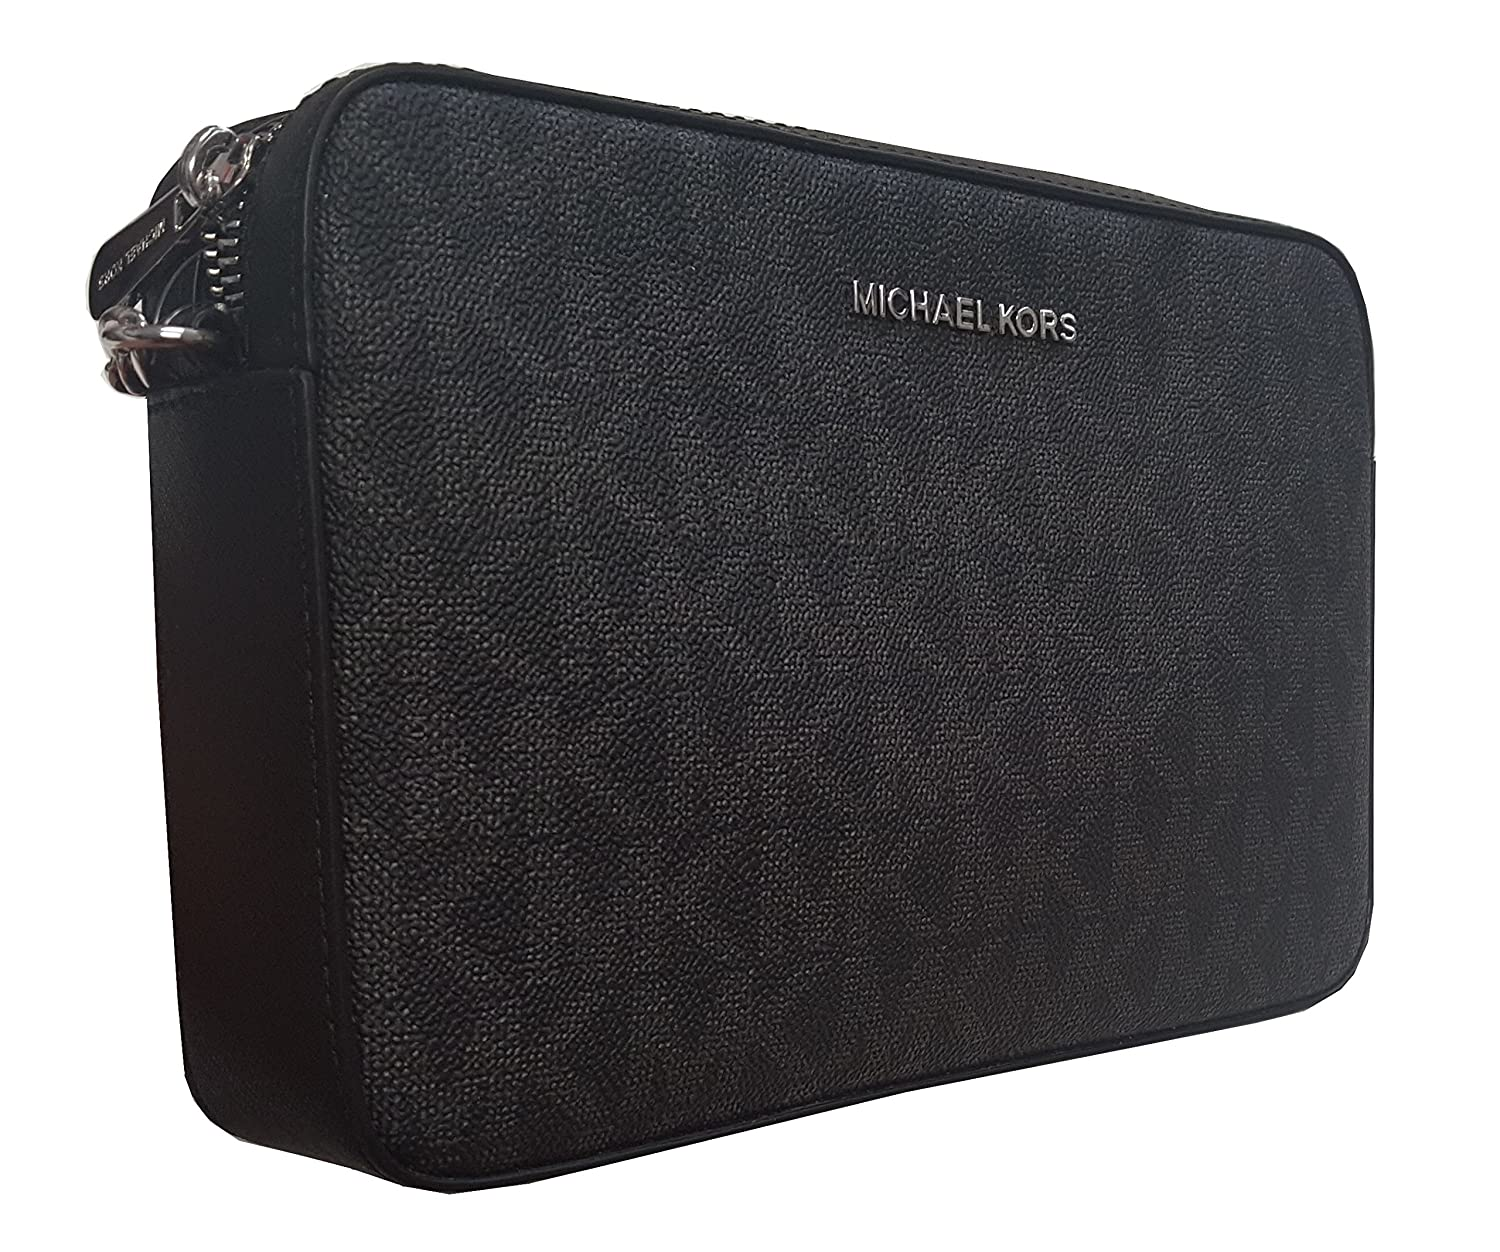 fb983b23afcd41 Michael Kors Jet Set Large East West Crossbody Bag Black MK Signature:  Handbags: Amazon.com